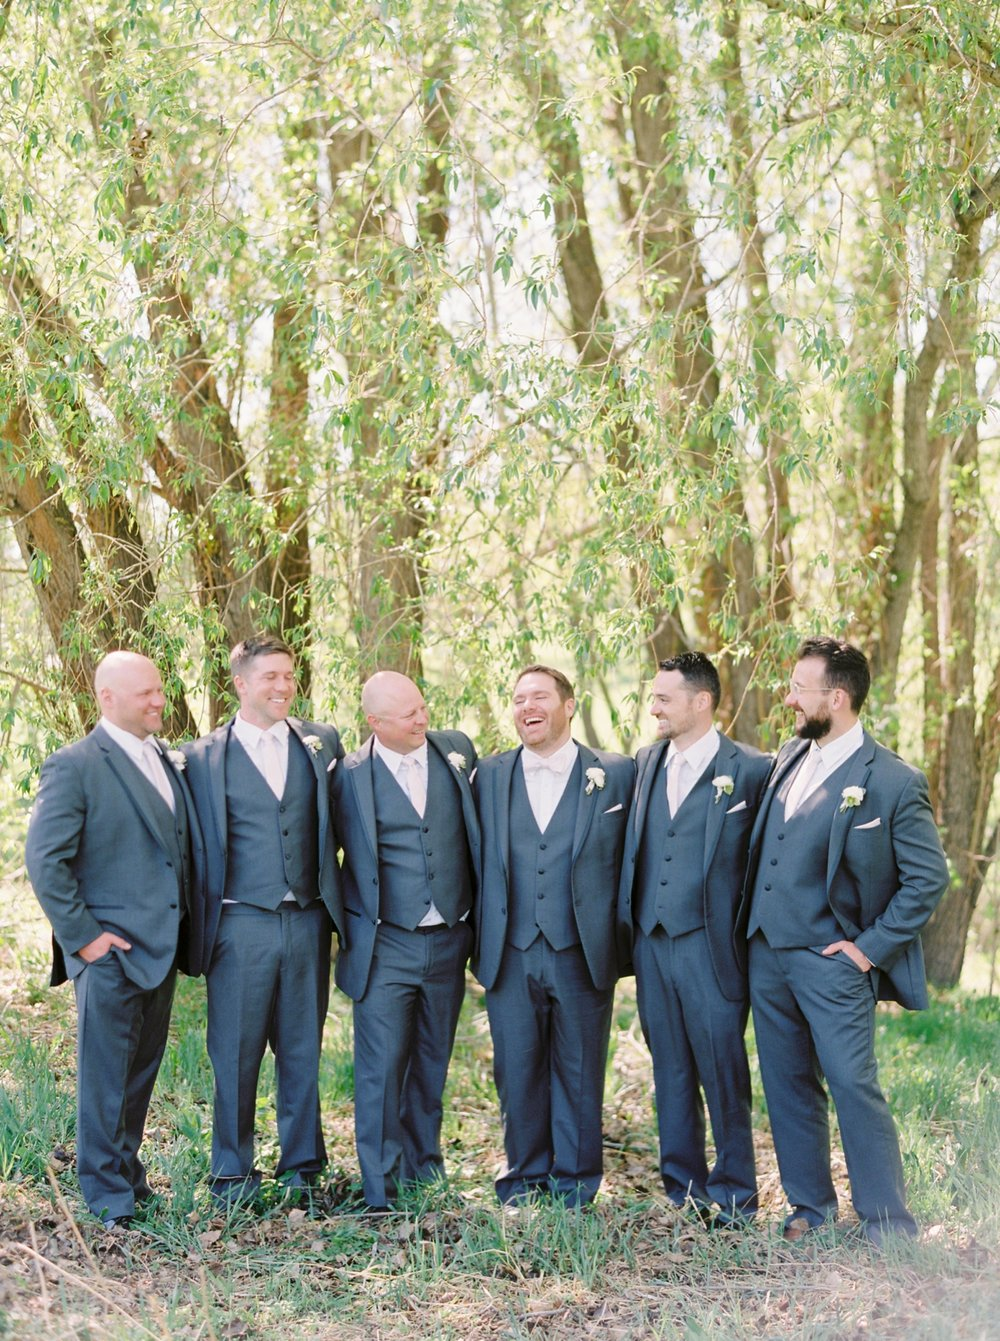 calgary wedding photographers | Ukrainian wedding | justine milton fine art photographer | groomsmen